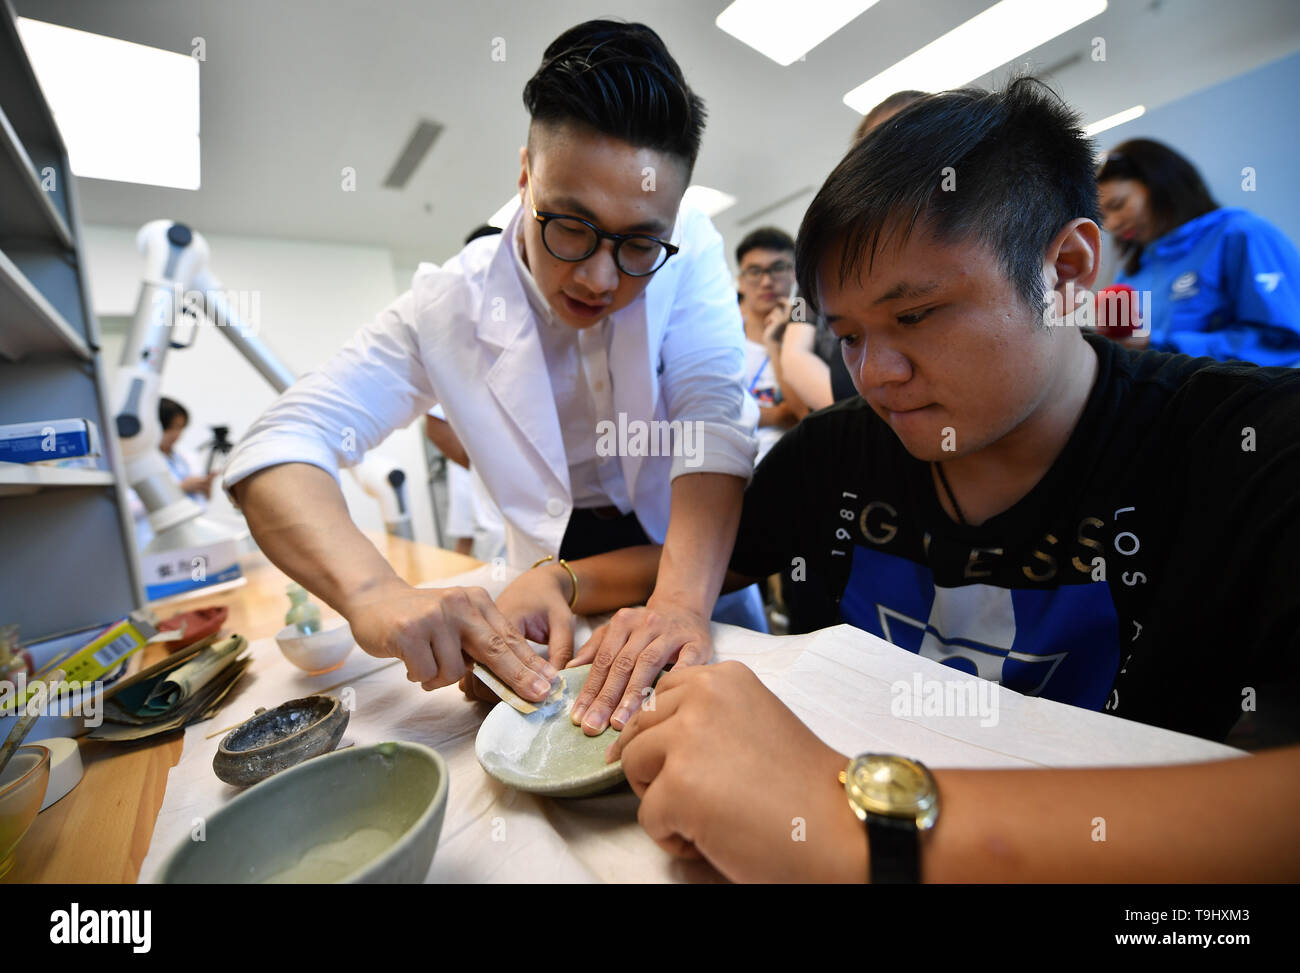 Hainan, China. 18th May, 2019. A restorer of ancient ceramics guides the audience to polish the ceramics at the China (Hainan) Museum of the South China Sea in Qionghai, south China, on May 18, 2019. The museum invited the audience to visit and experience the restoration of ancient ceramics on the International Museum Day. Credit: Guo Cheng/Xinhua/Alamy Live News Stock Photo